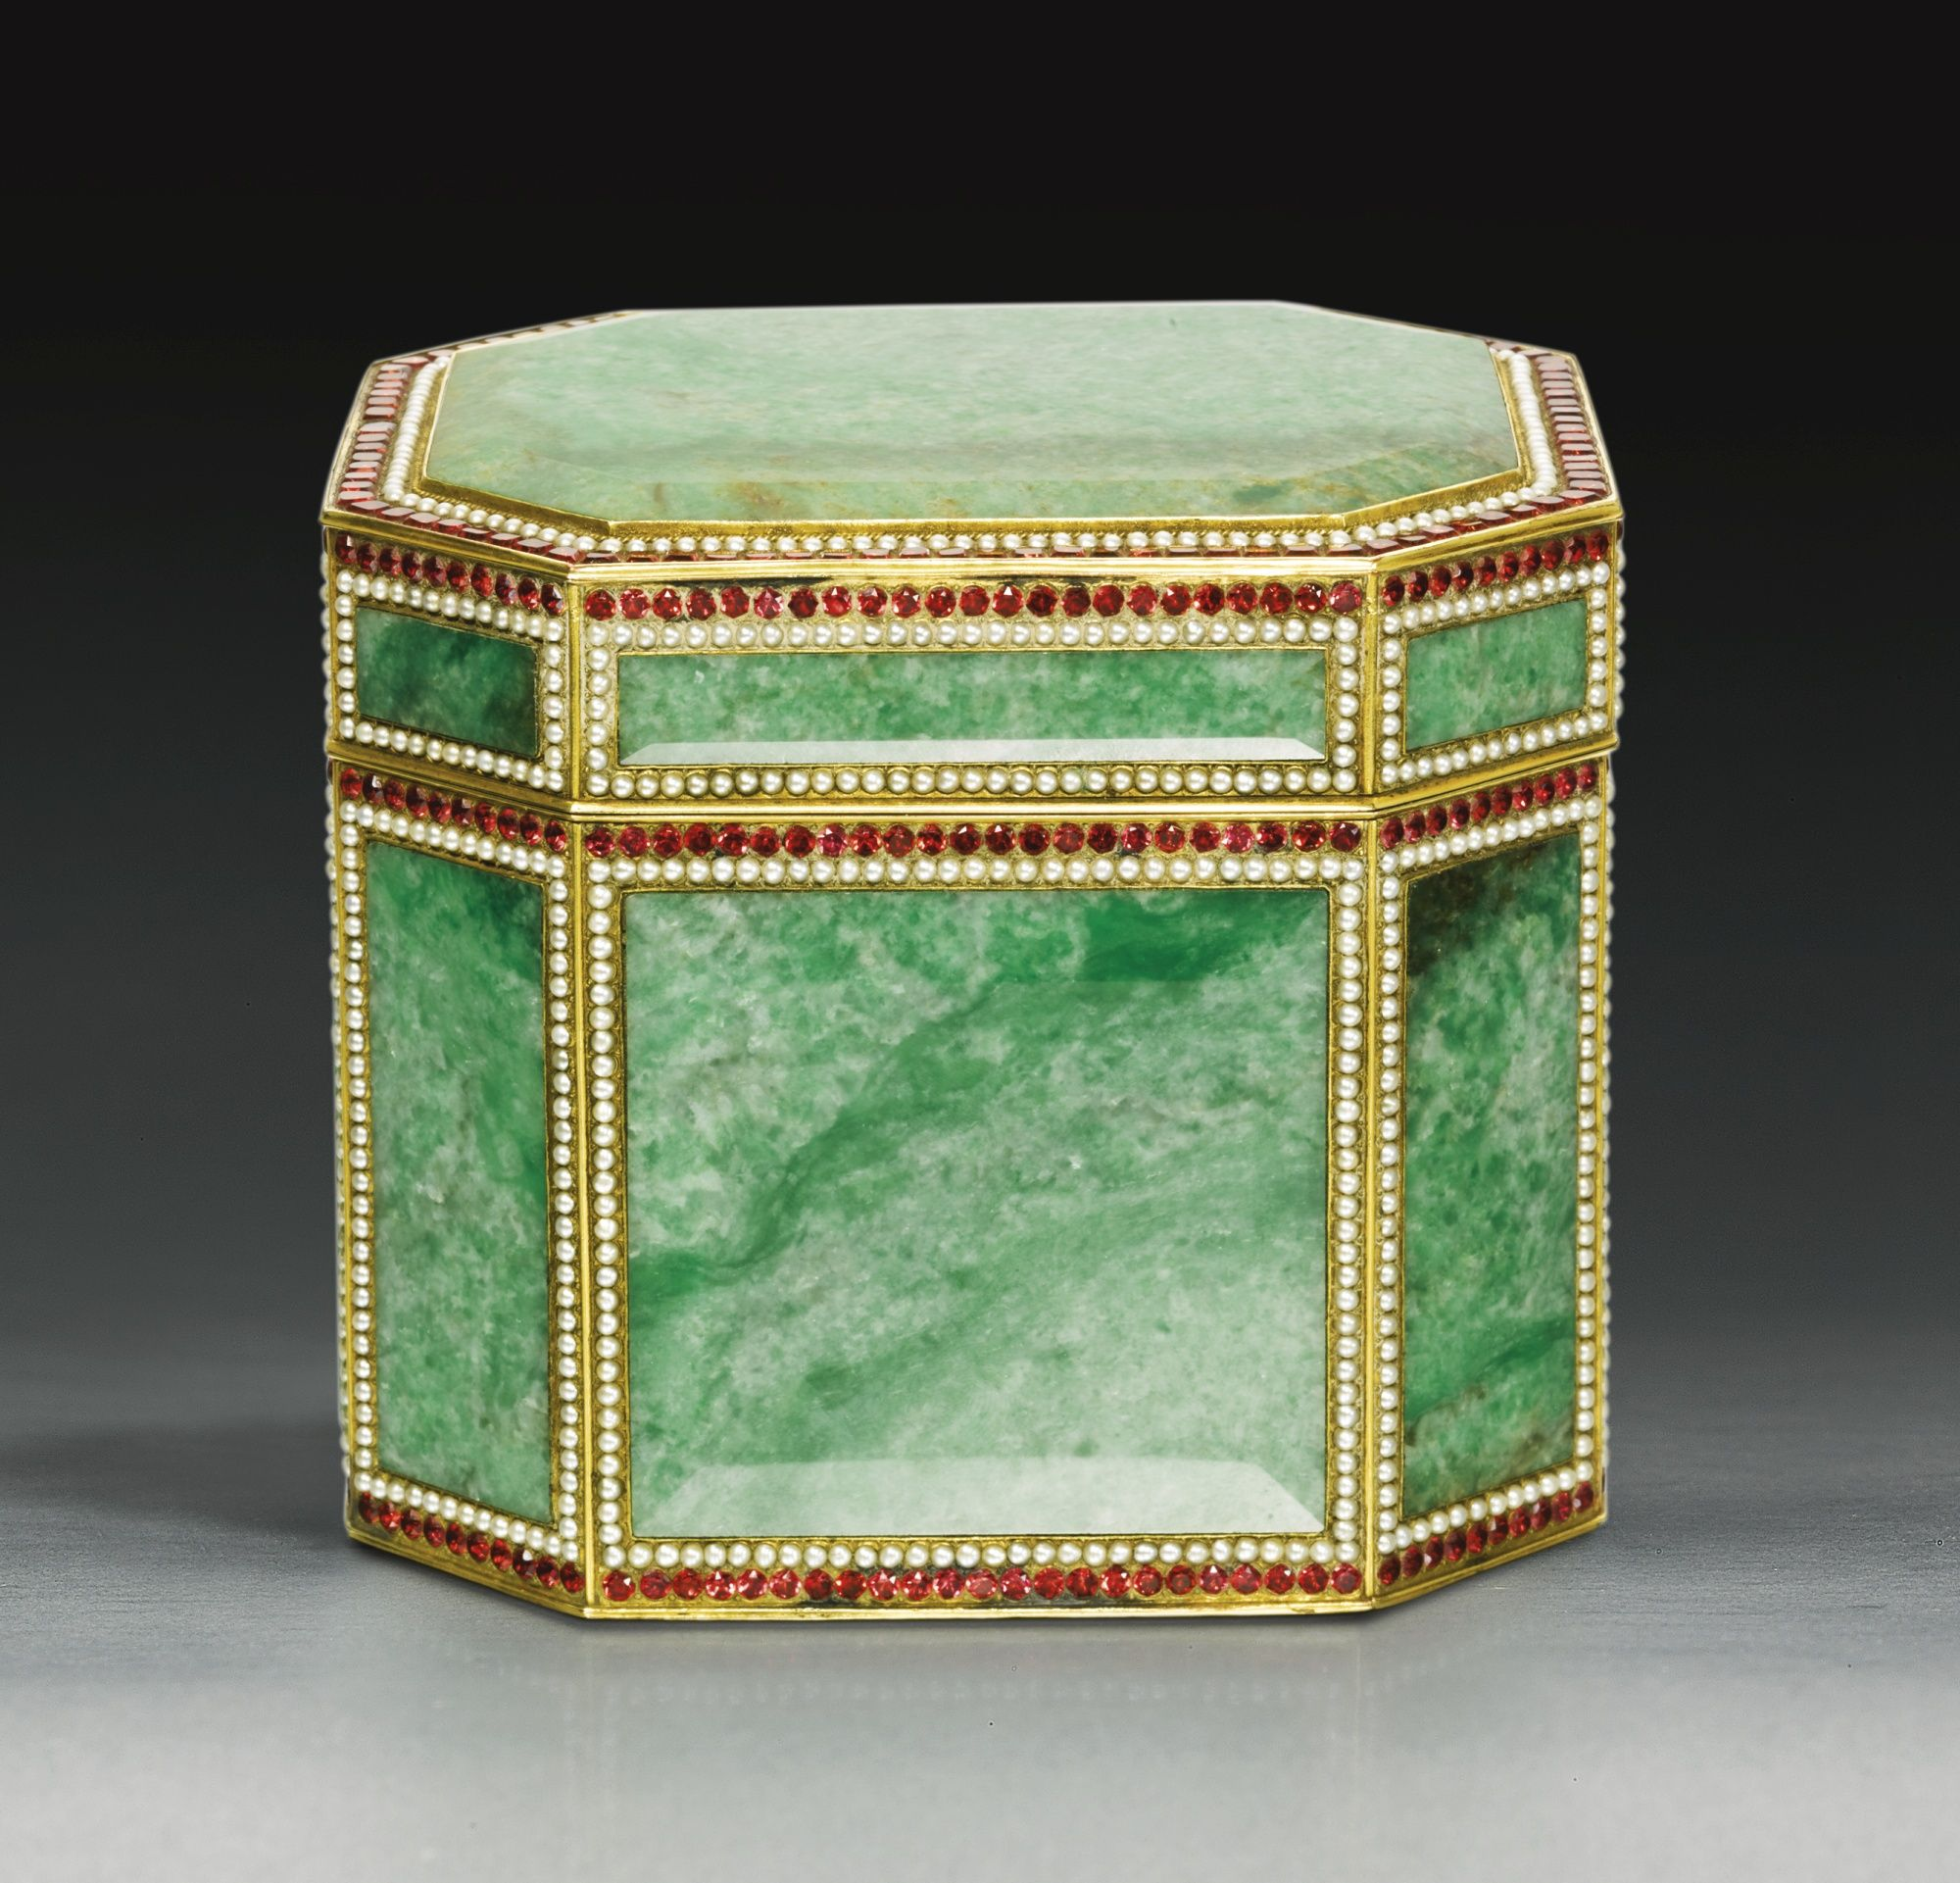 A rare Canton tribute embellished silver-gilt jadeite casket<br>Qing Dynasty, 19th century | Lot | Sotheby's